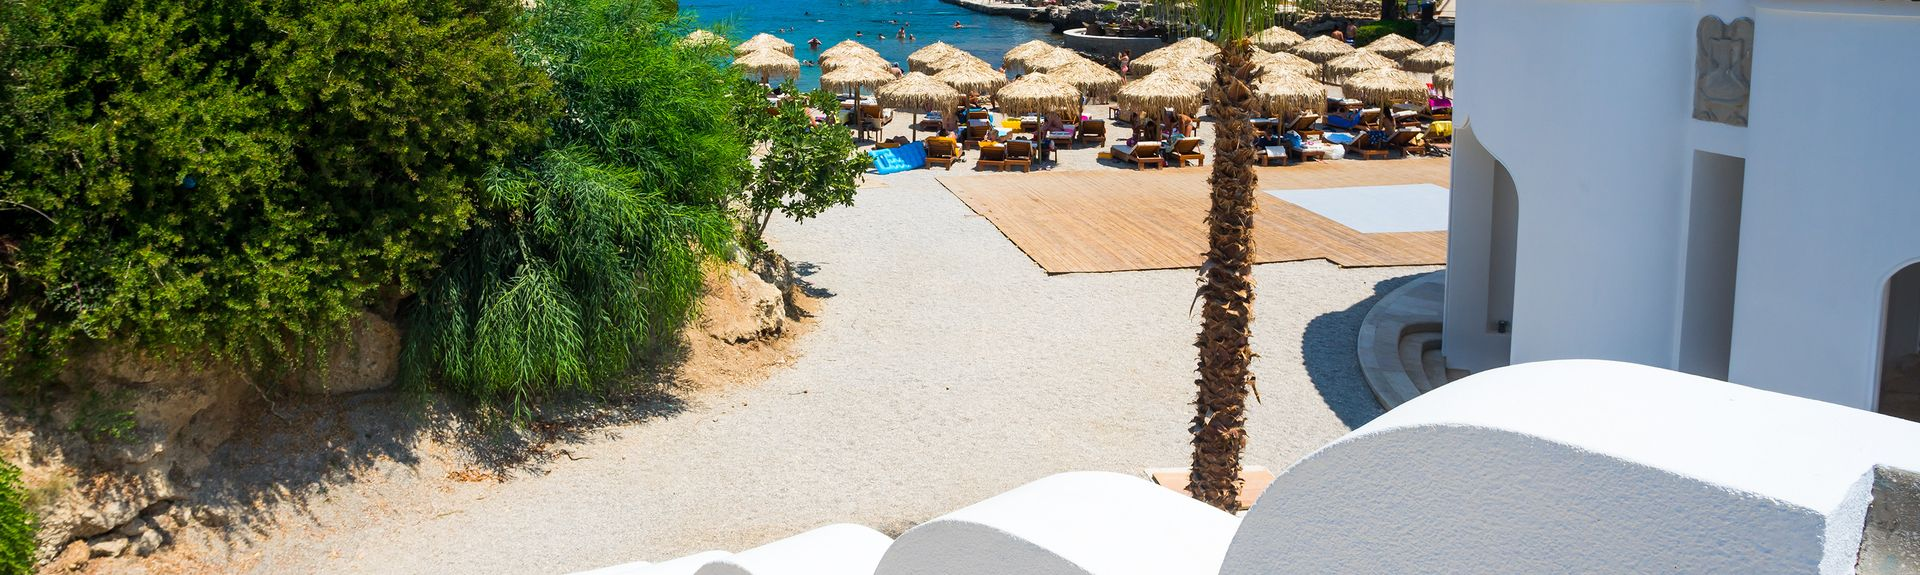 Rhodes, GR holiday lettings: Villas & more | HomeAway